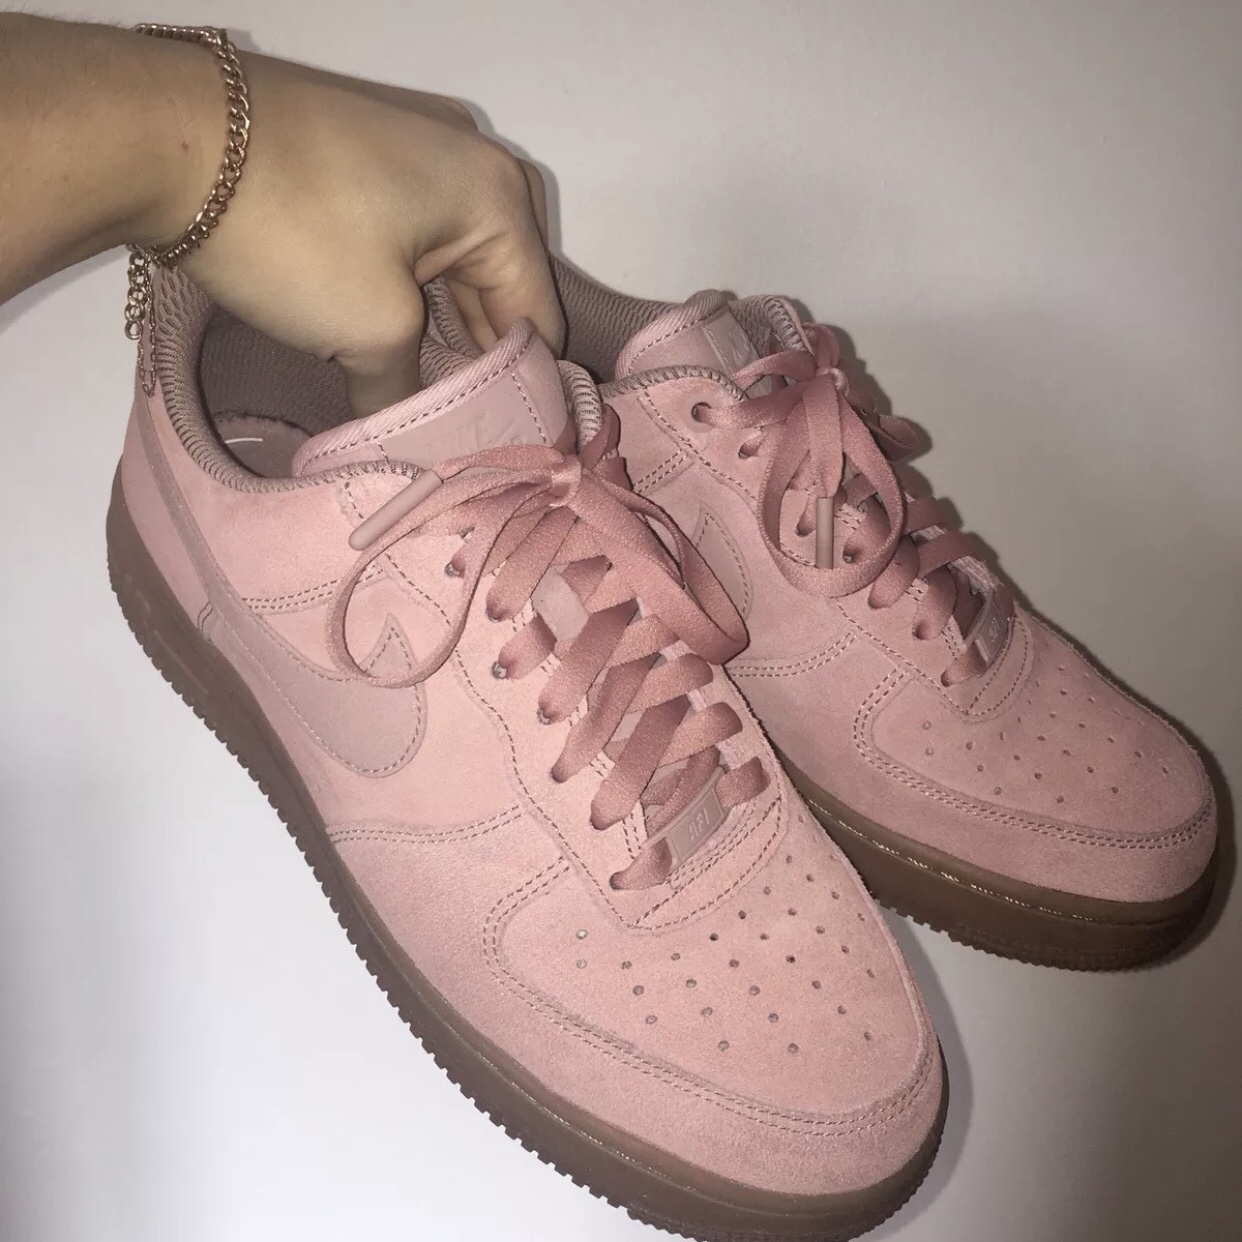 Nike Air Force 1s in dusty pink / gum